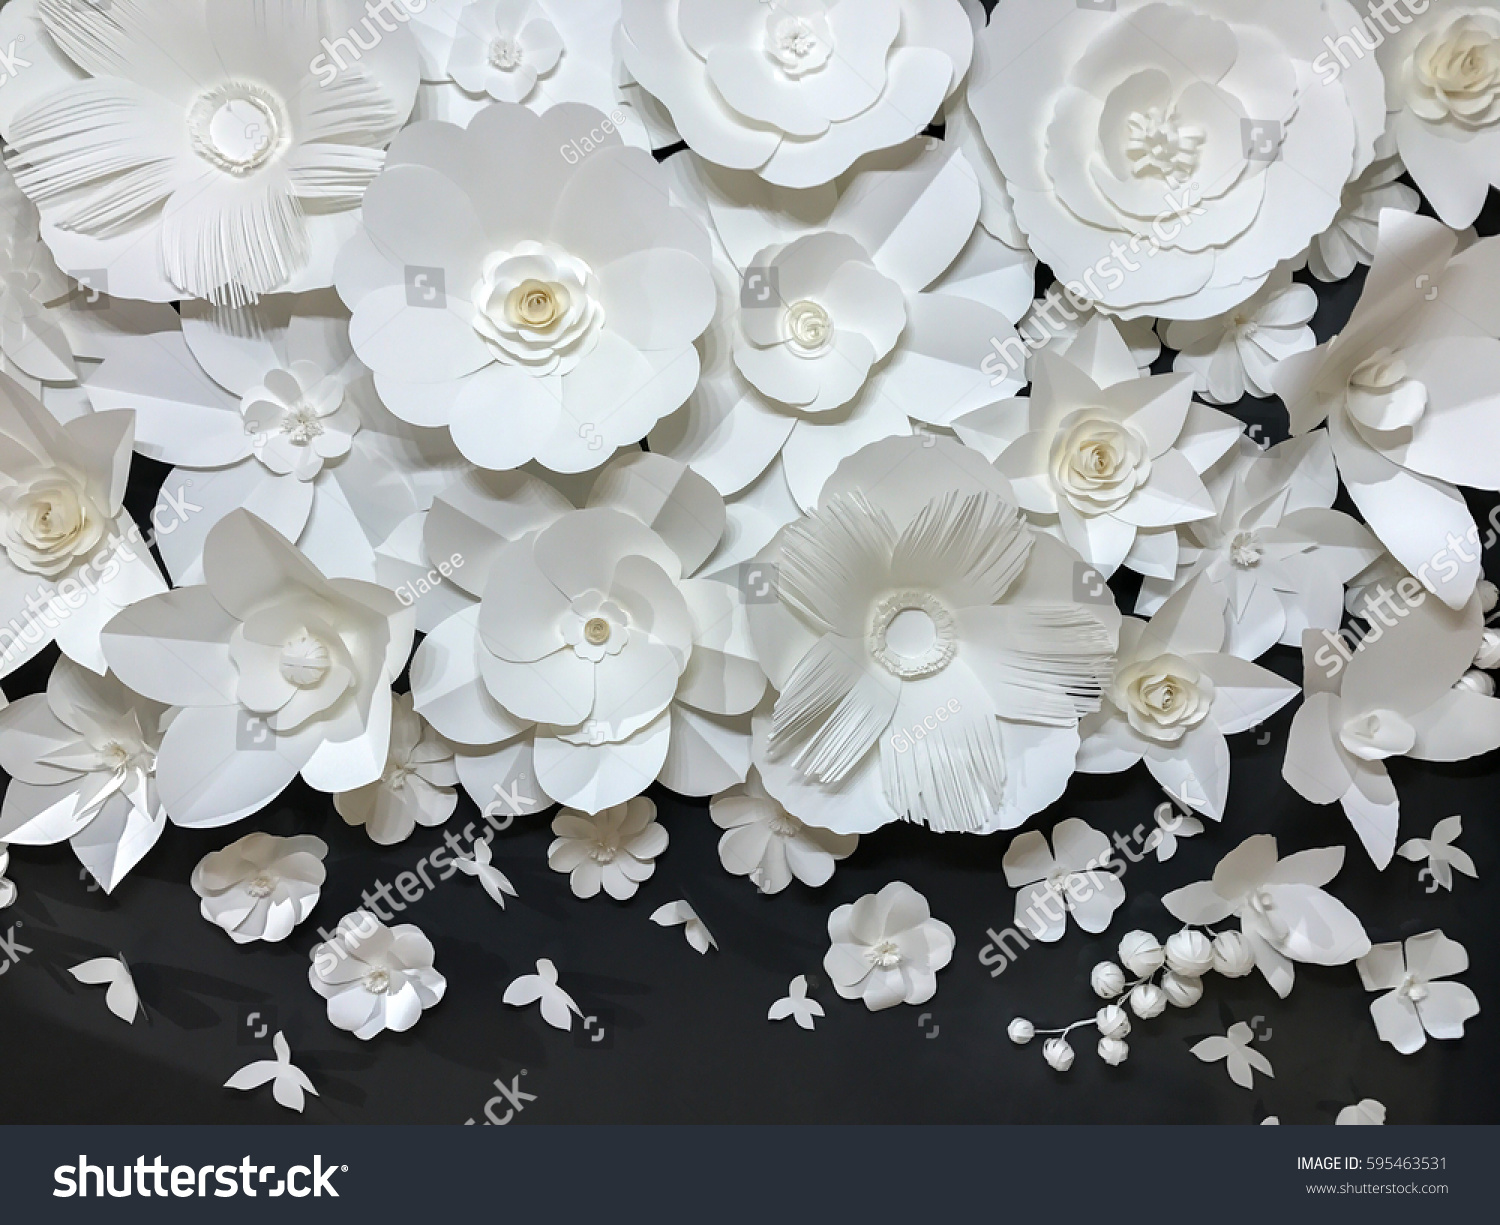 Beautiful Group Of Variety Style Handmade Quilling White Floral